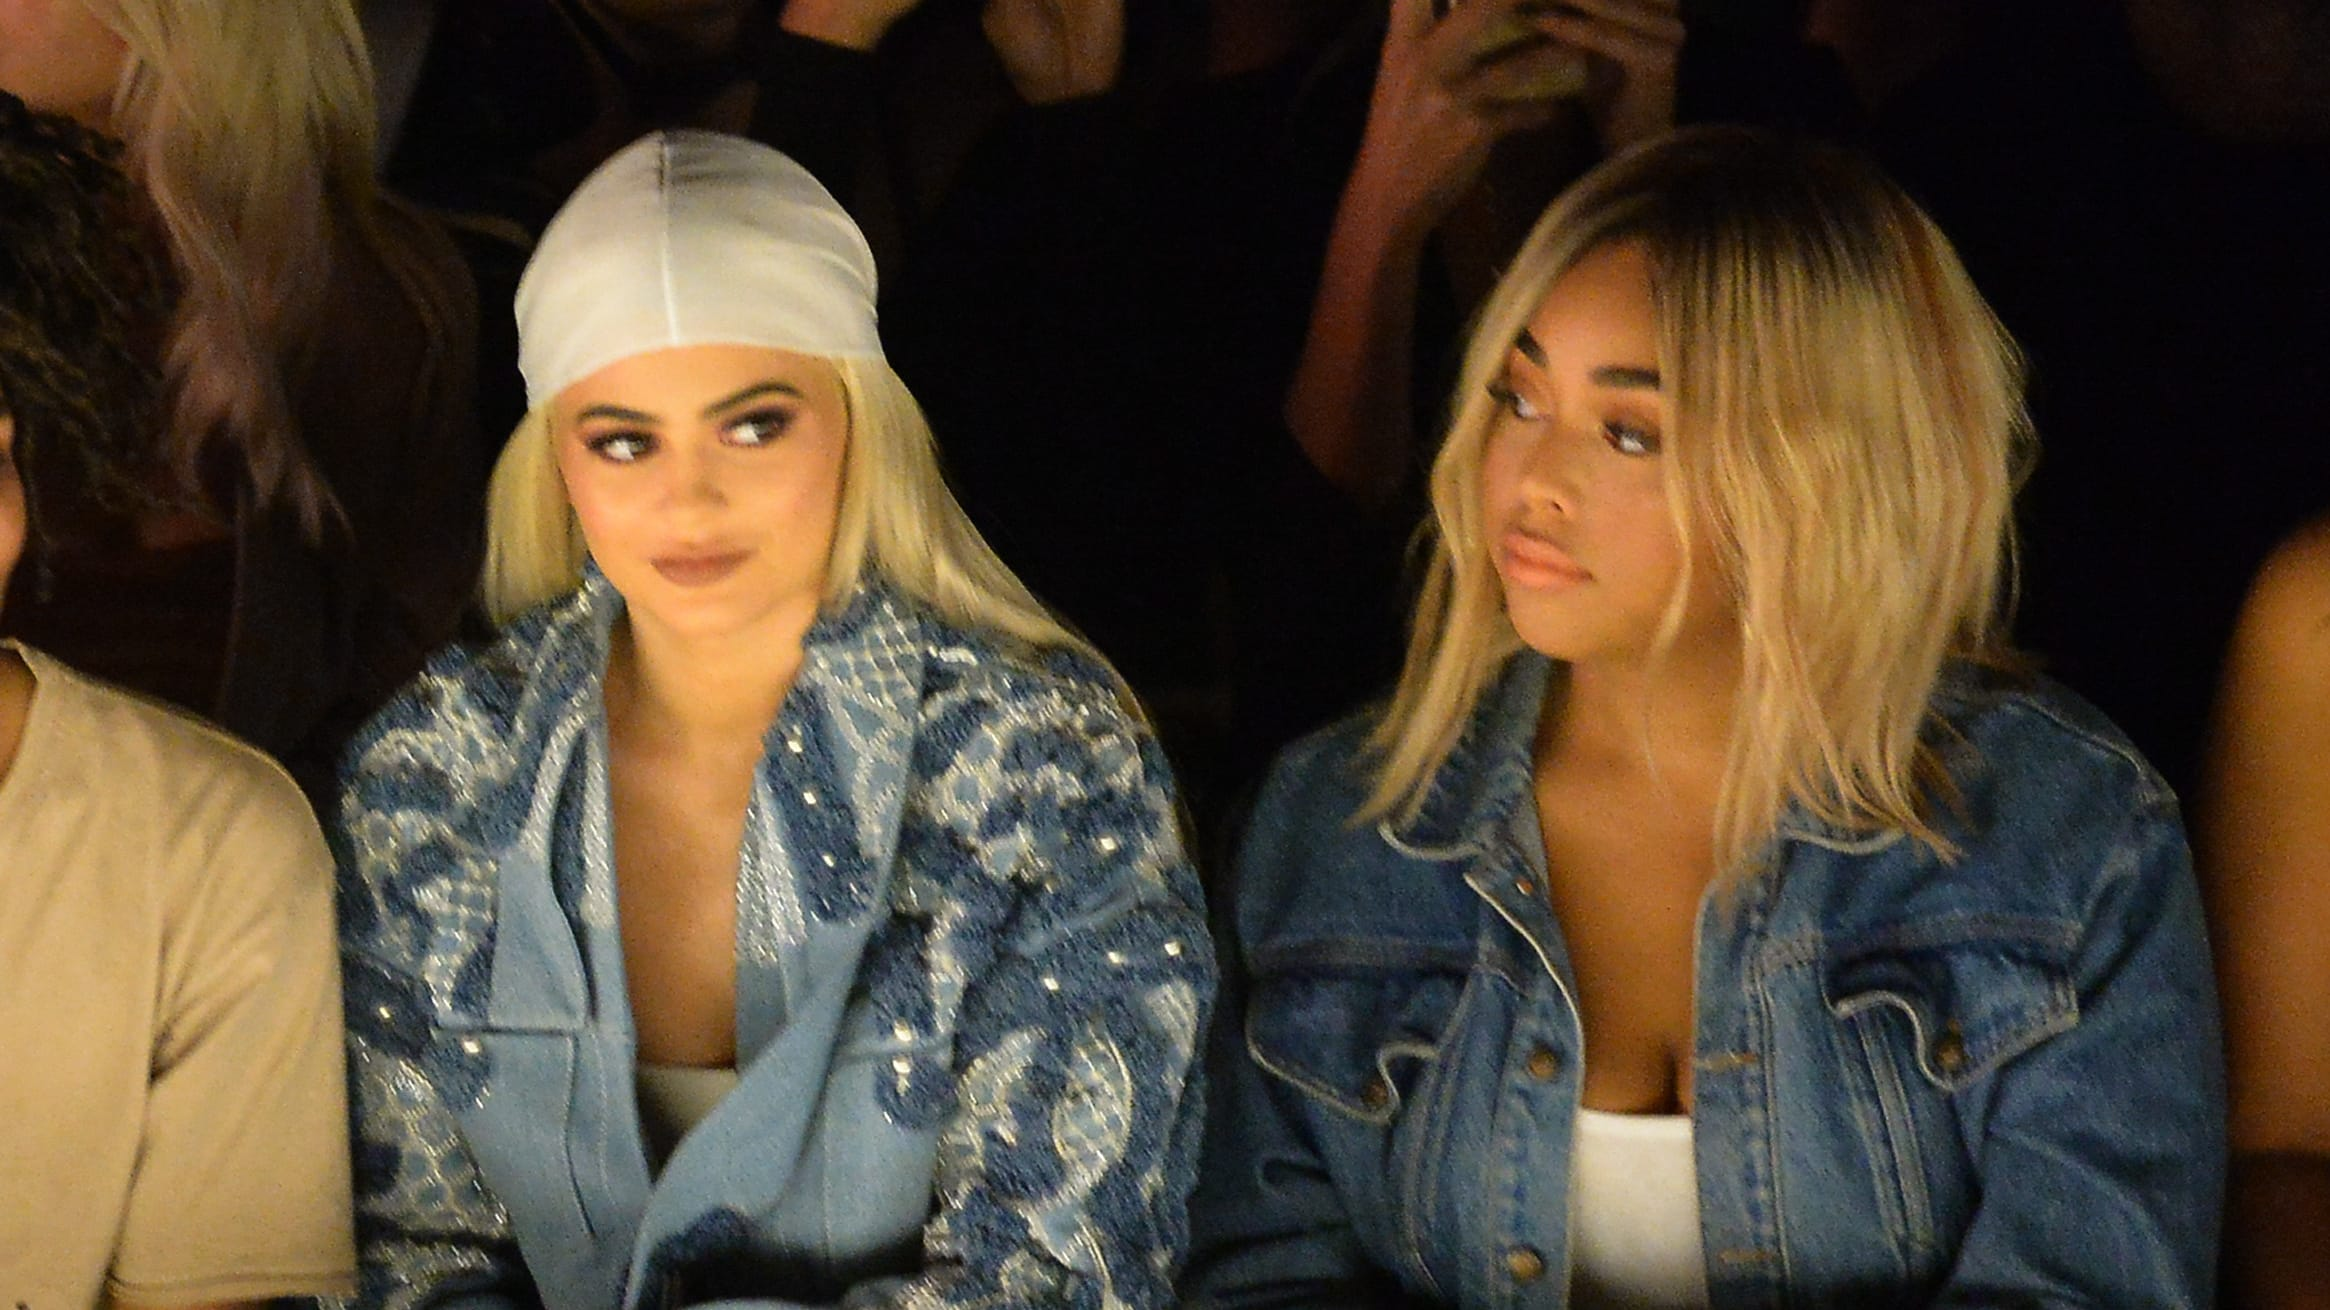 NEW YORK, NY - SEPTEMBER 10:  Kylie Jenner (L) and Jordyn Woods attend the Jonathan Simkhai fashion show during New York Fashion Week: The Shows at The Arc, Skylight at Moynihan Station on September 10, 2016 in New York City.  (Photo by Gustavo Caballero/Getty Images for New York Fashion Week: The Shows)